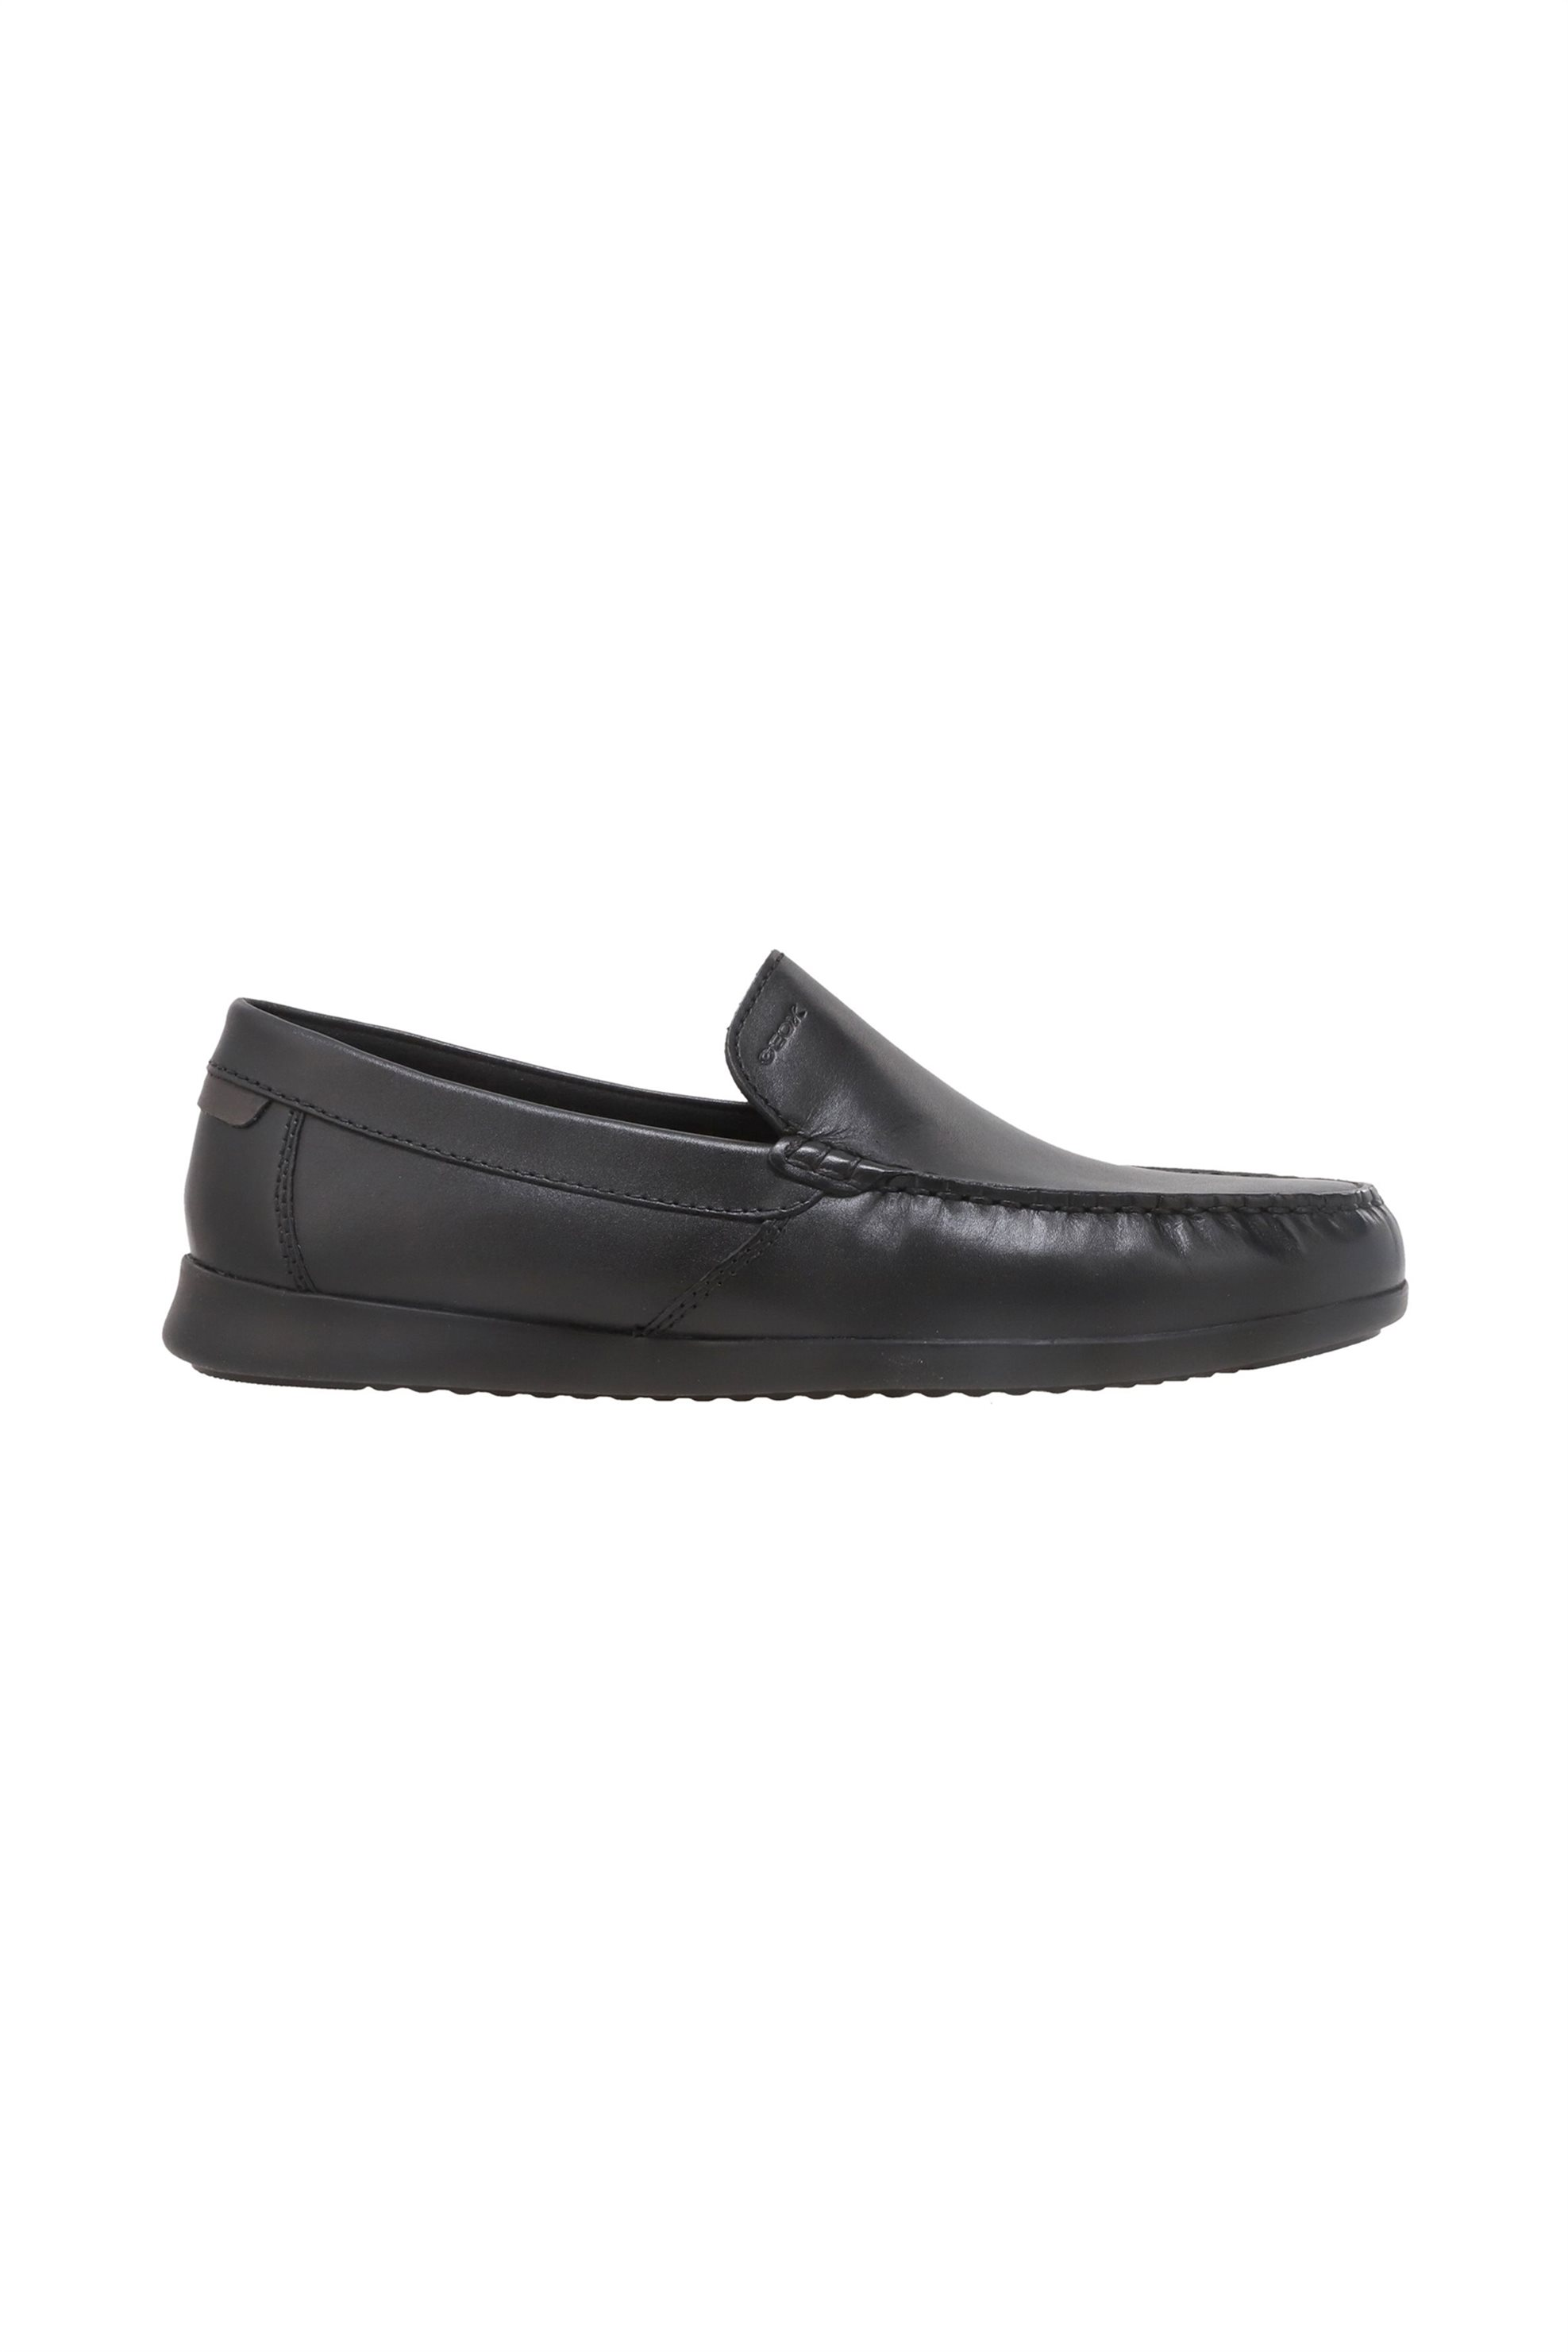 "Geox ανδρικά δερμάτινα loafers ""Sile"" – U028UA – Μαύρο"